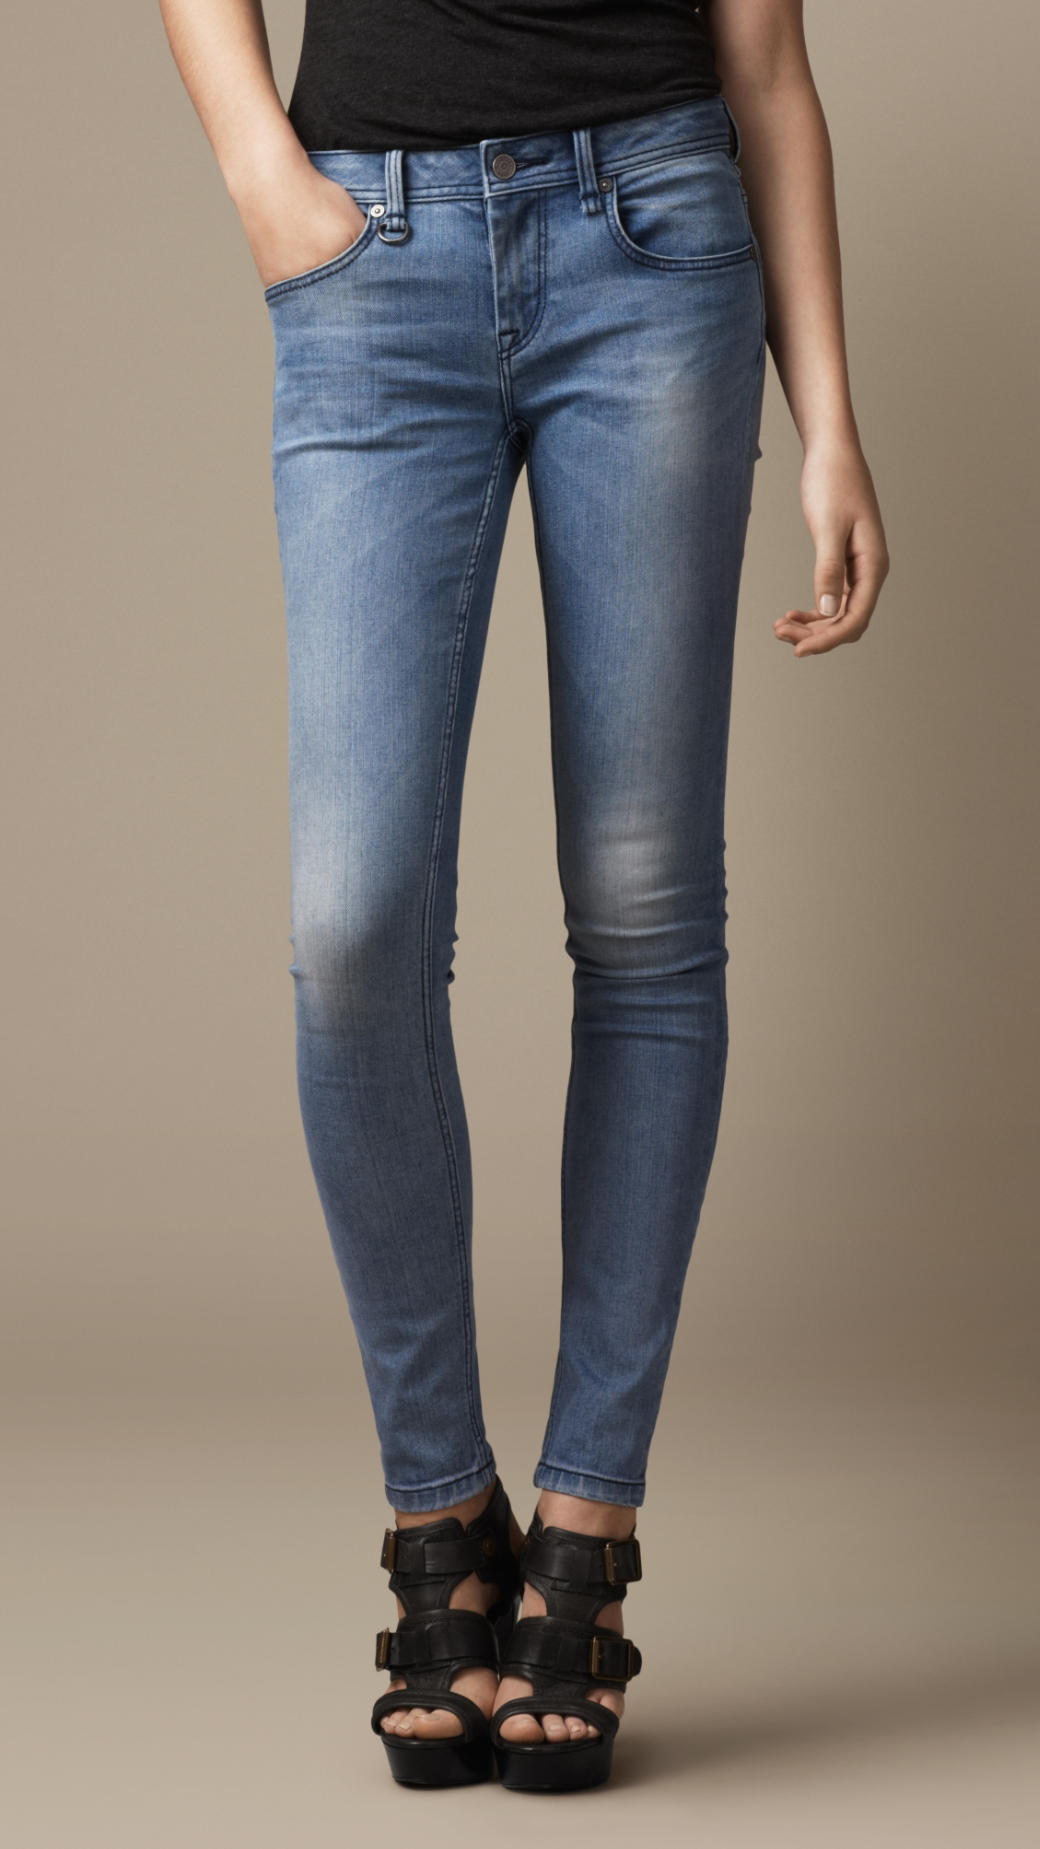 Find great deals on eBay for Stonewash Skinny Jeans in Women's Jeans. Shop with confidence.